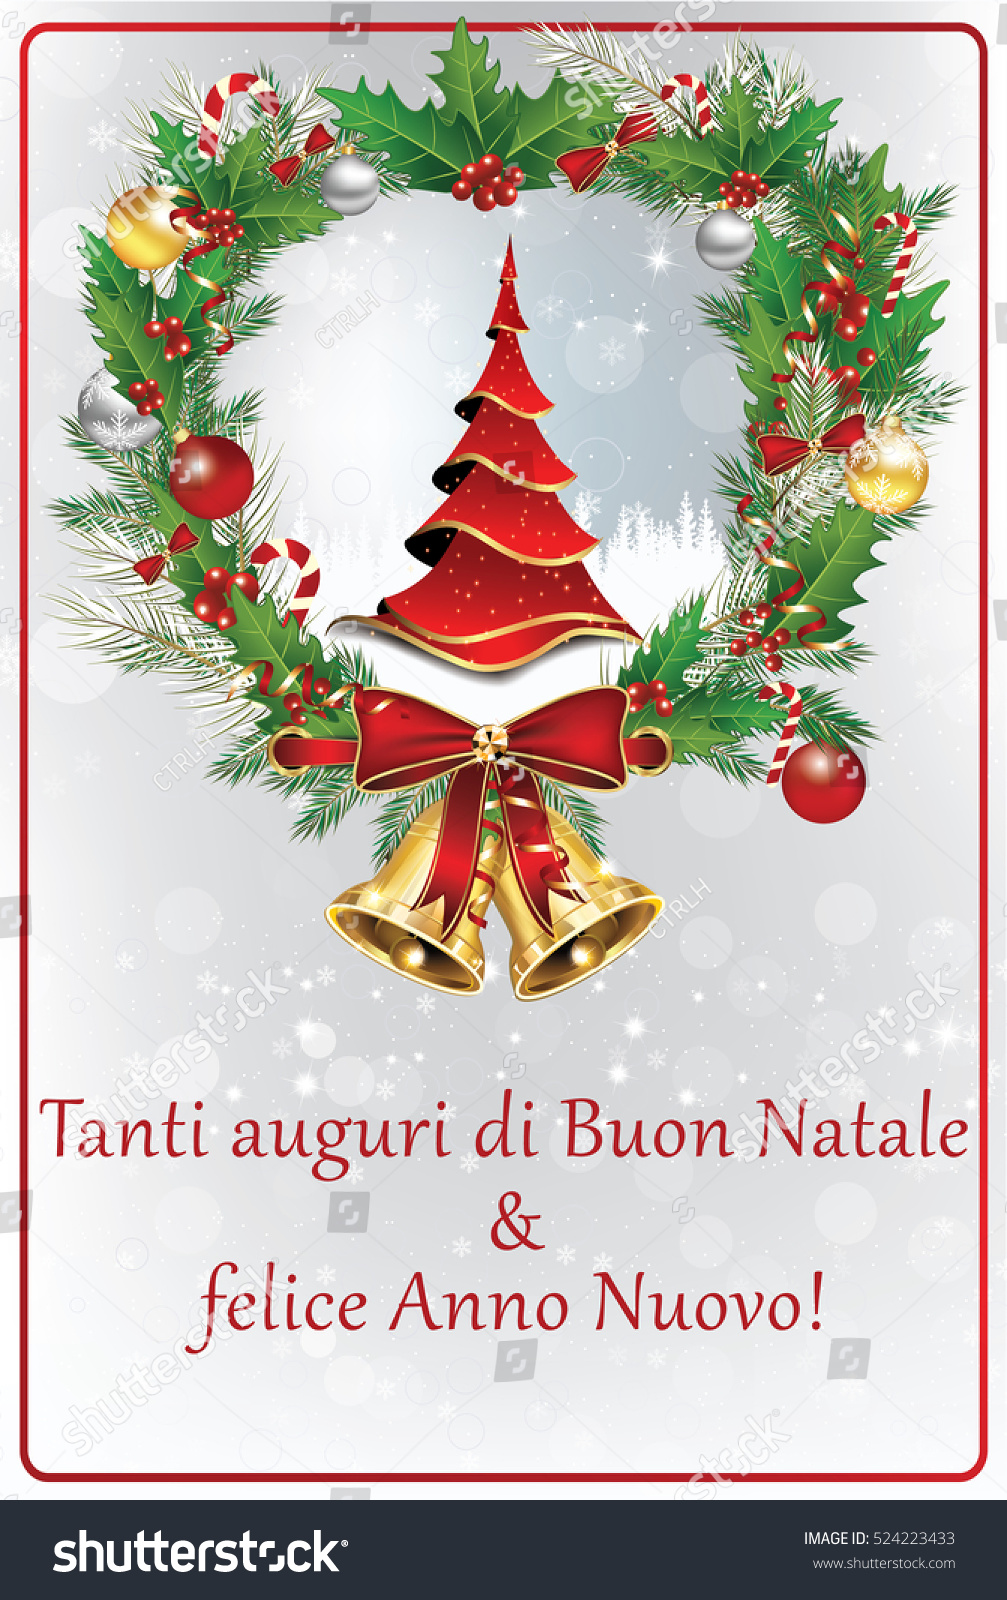 italian winter holiday greeting card merry christmas and happy new year italian language